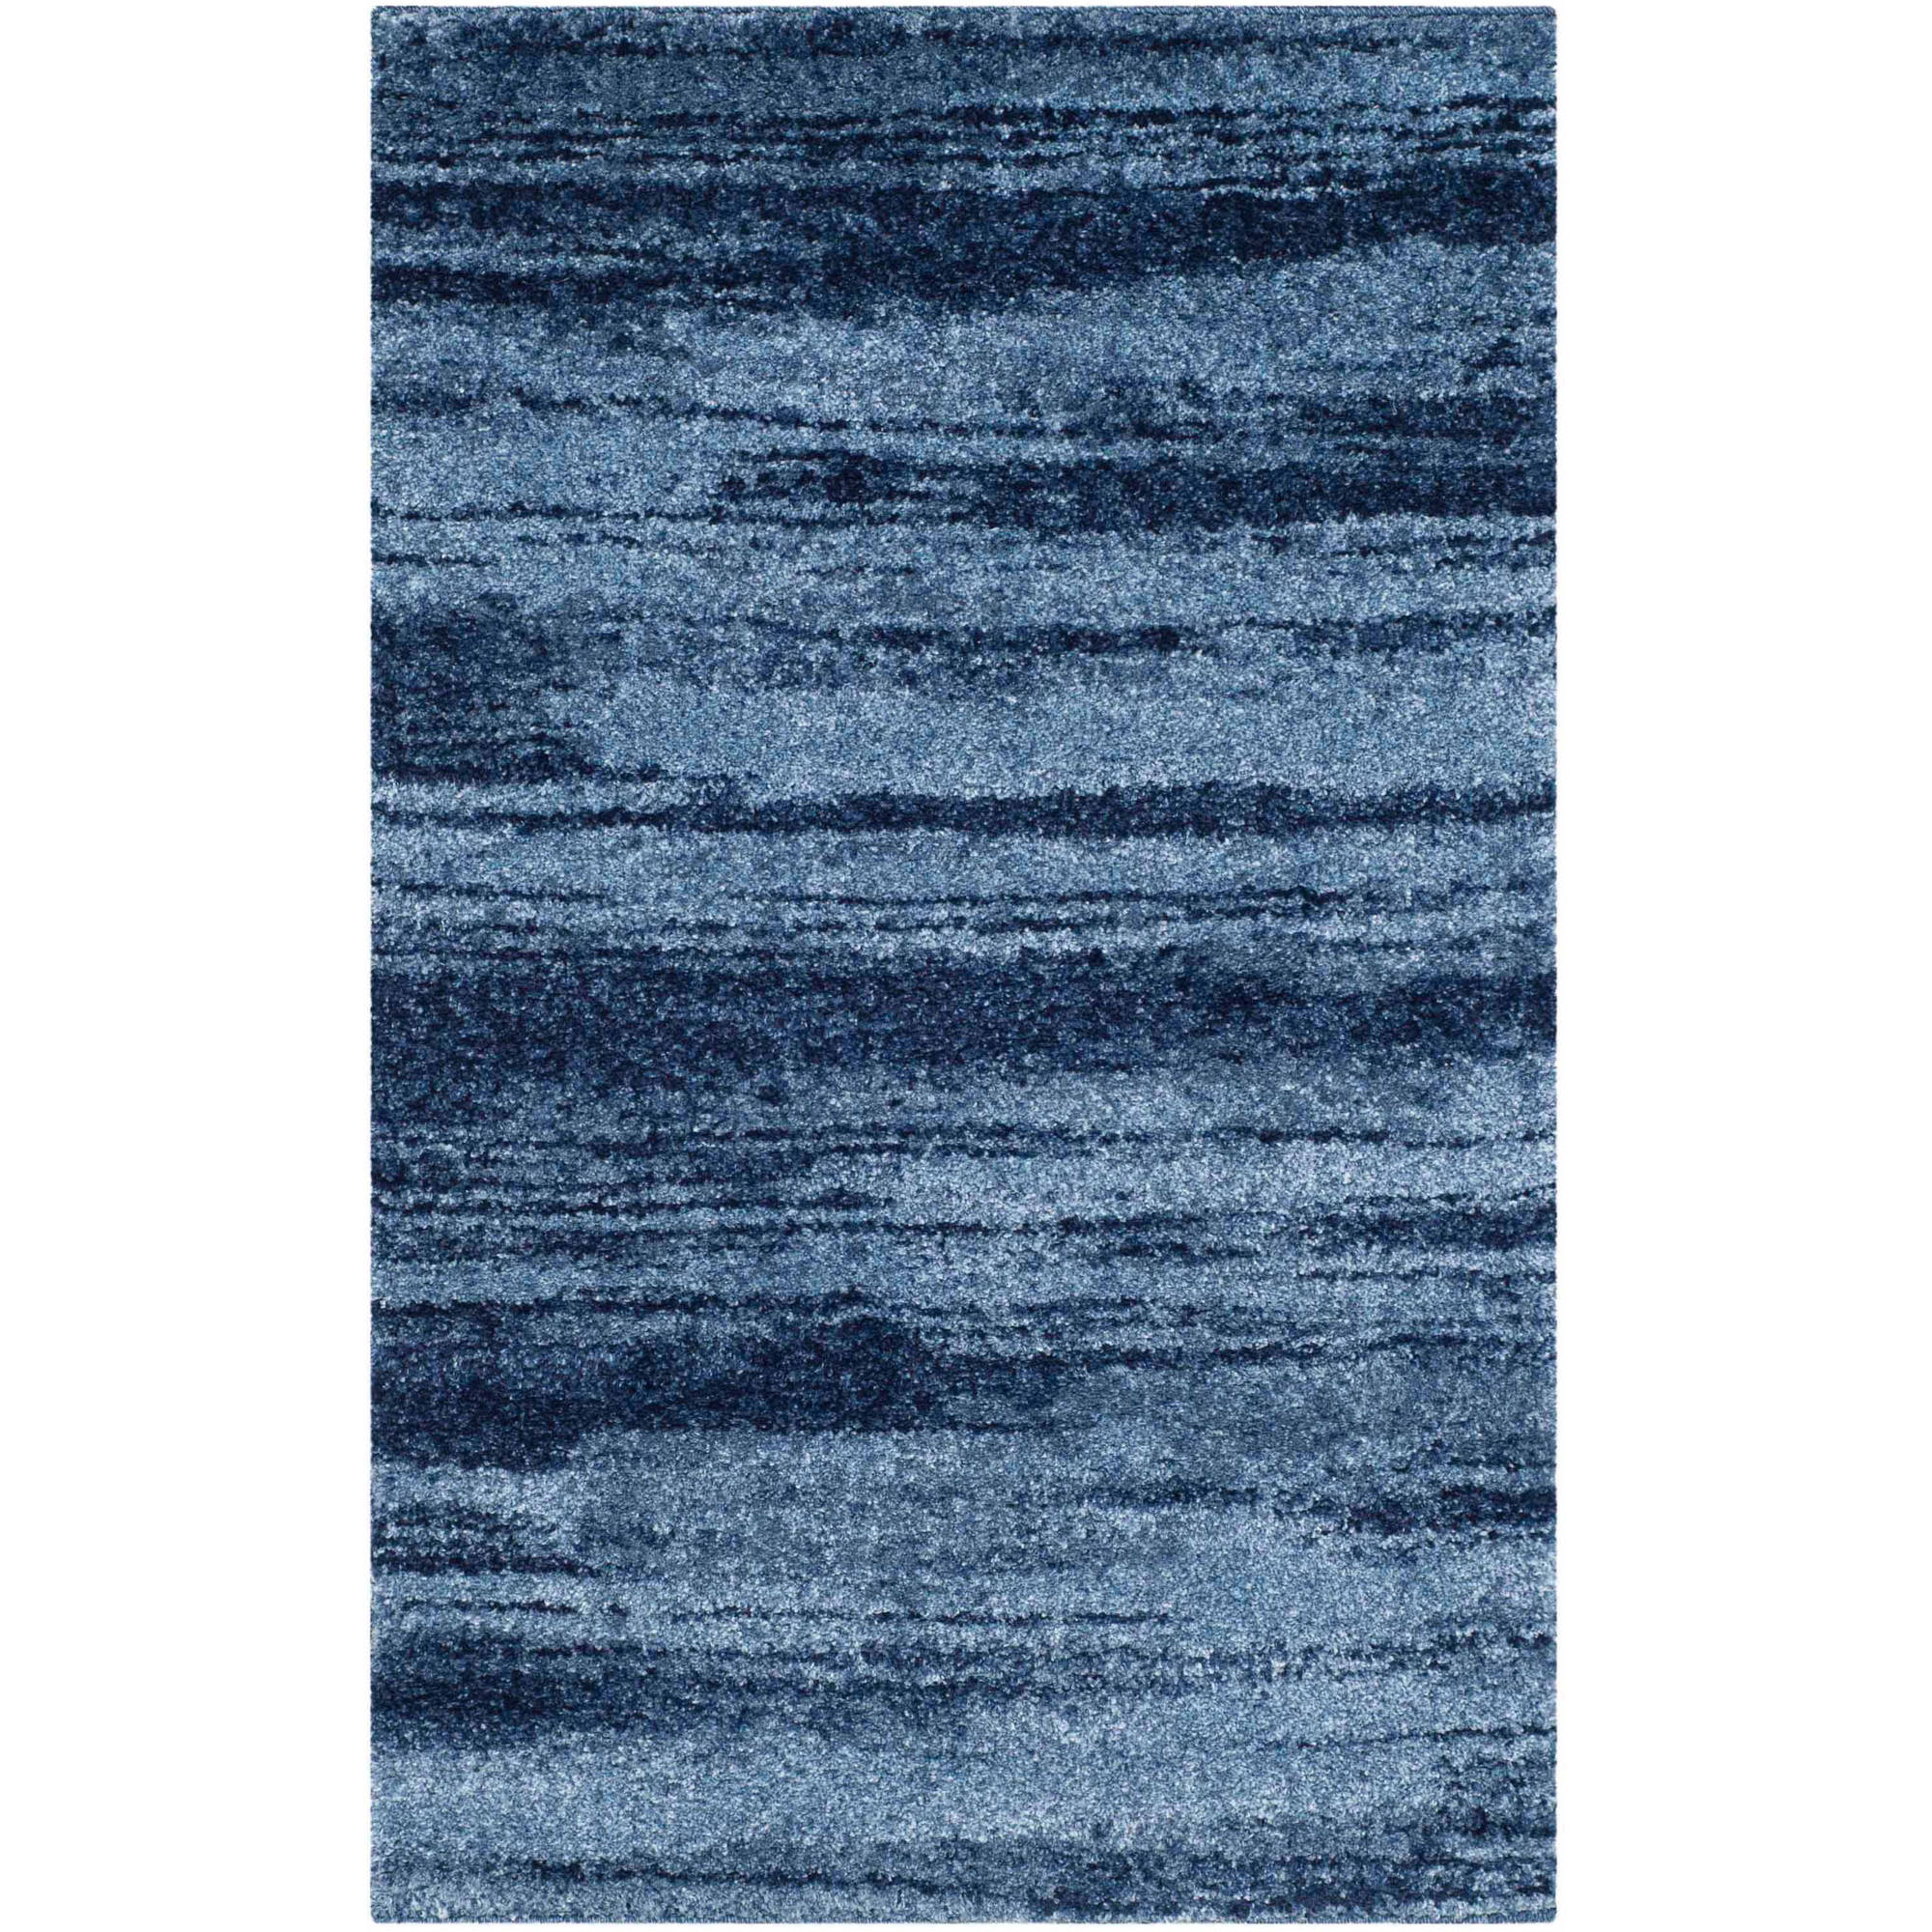 Safavieh Retro Chantel Abstract Area Rug or Runner